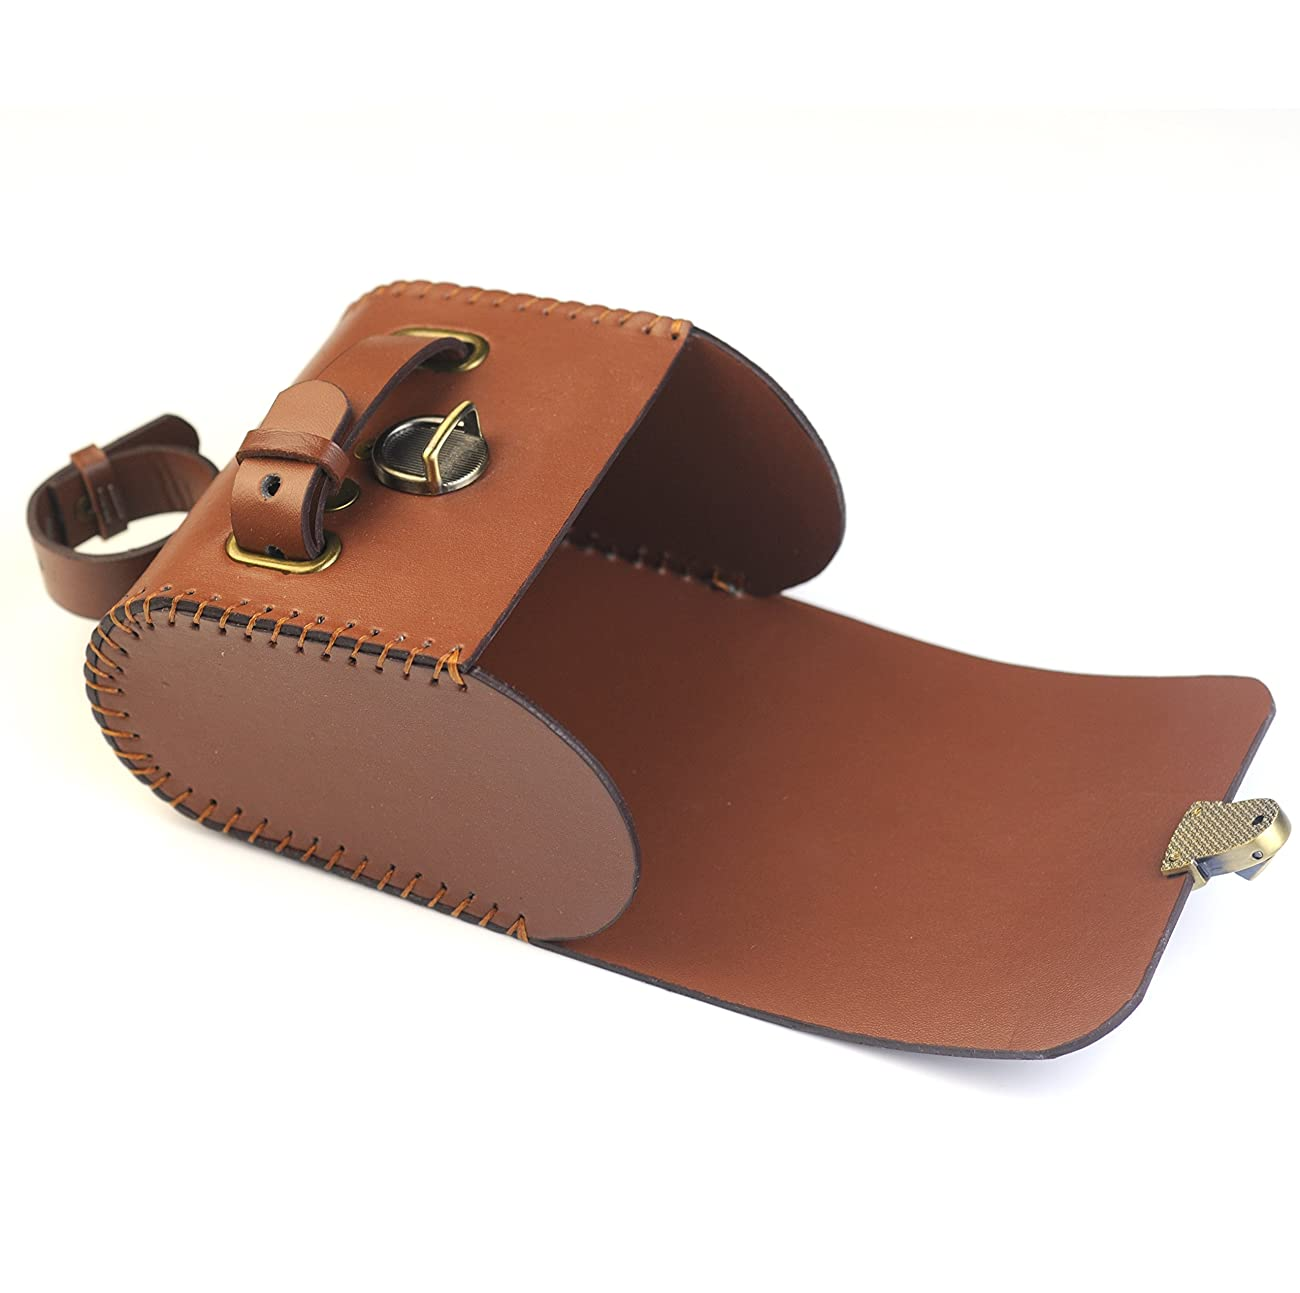 Mountain Bike Vintage Hardness PU Saddle Bag Brown 2